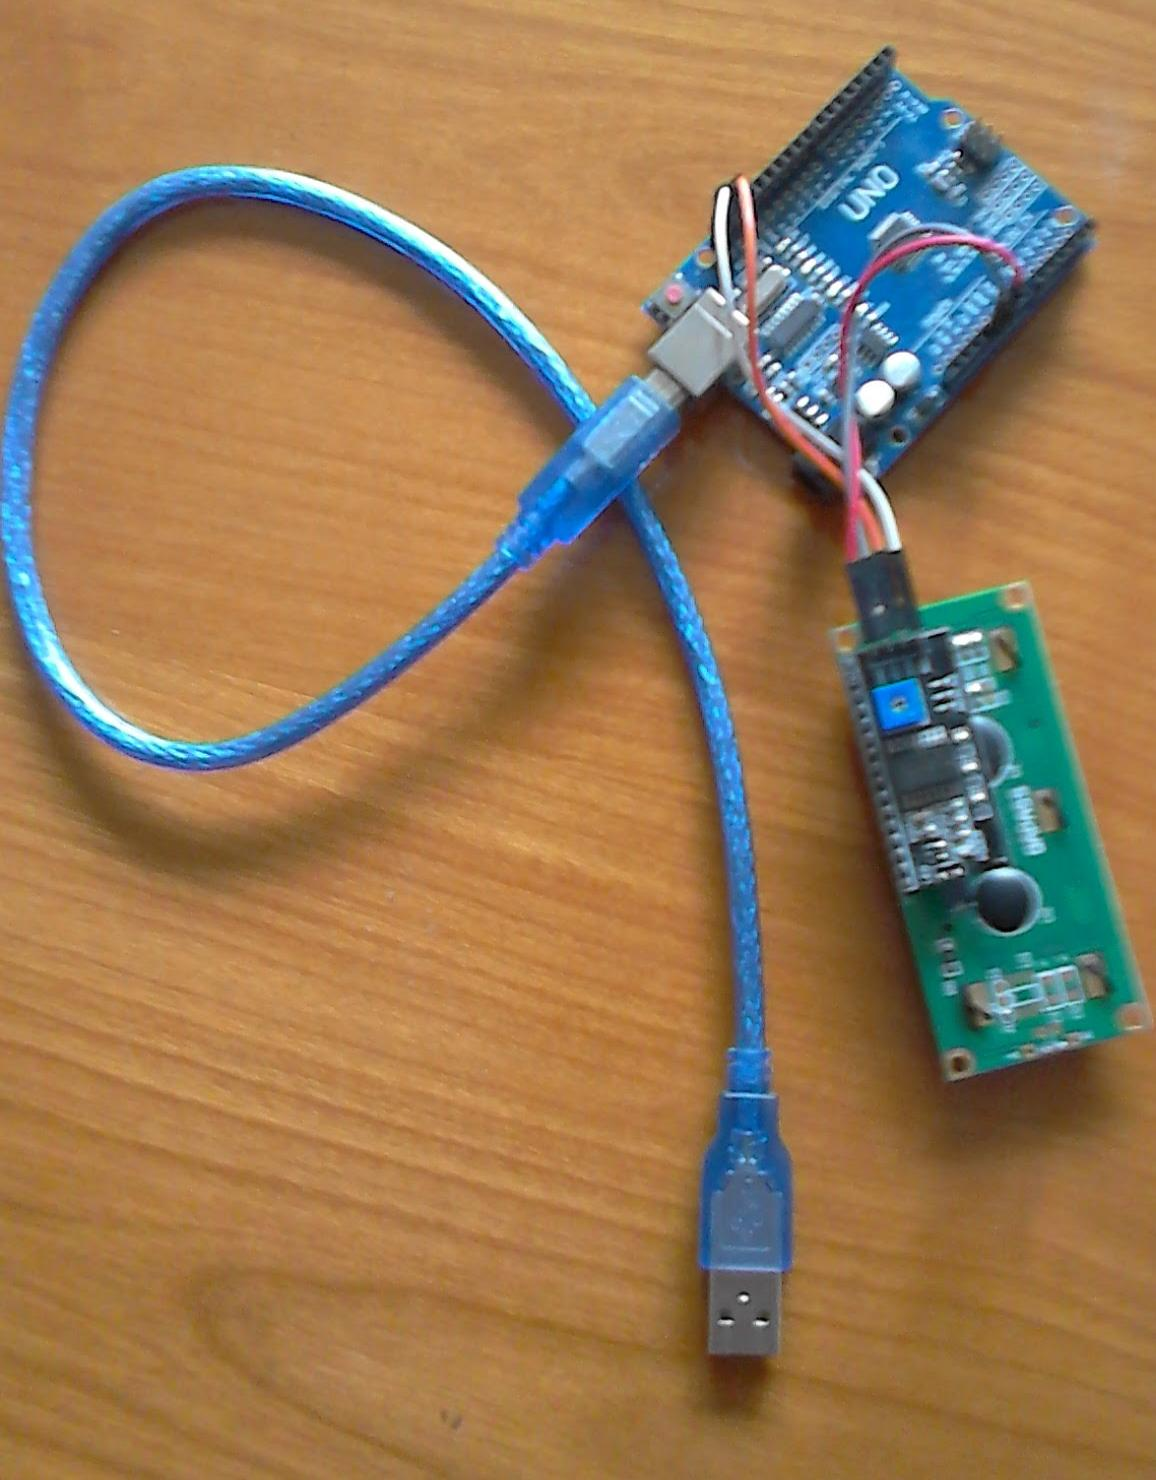 pin 7 arduino 2004 klr 650 wiring diagram the jeronimus net blog 1602a lcd with i2c